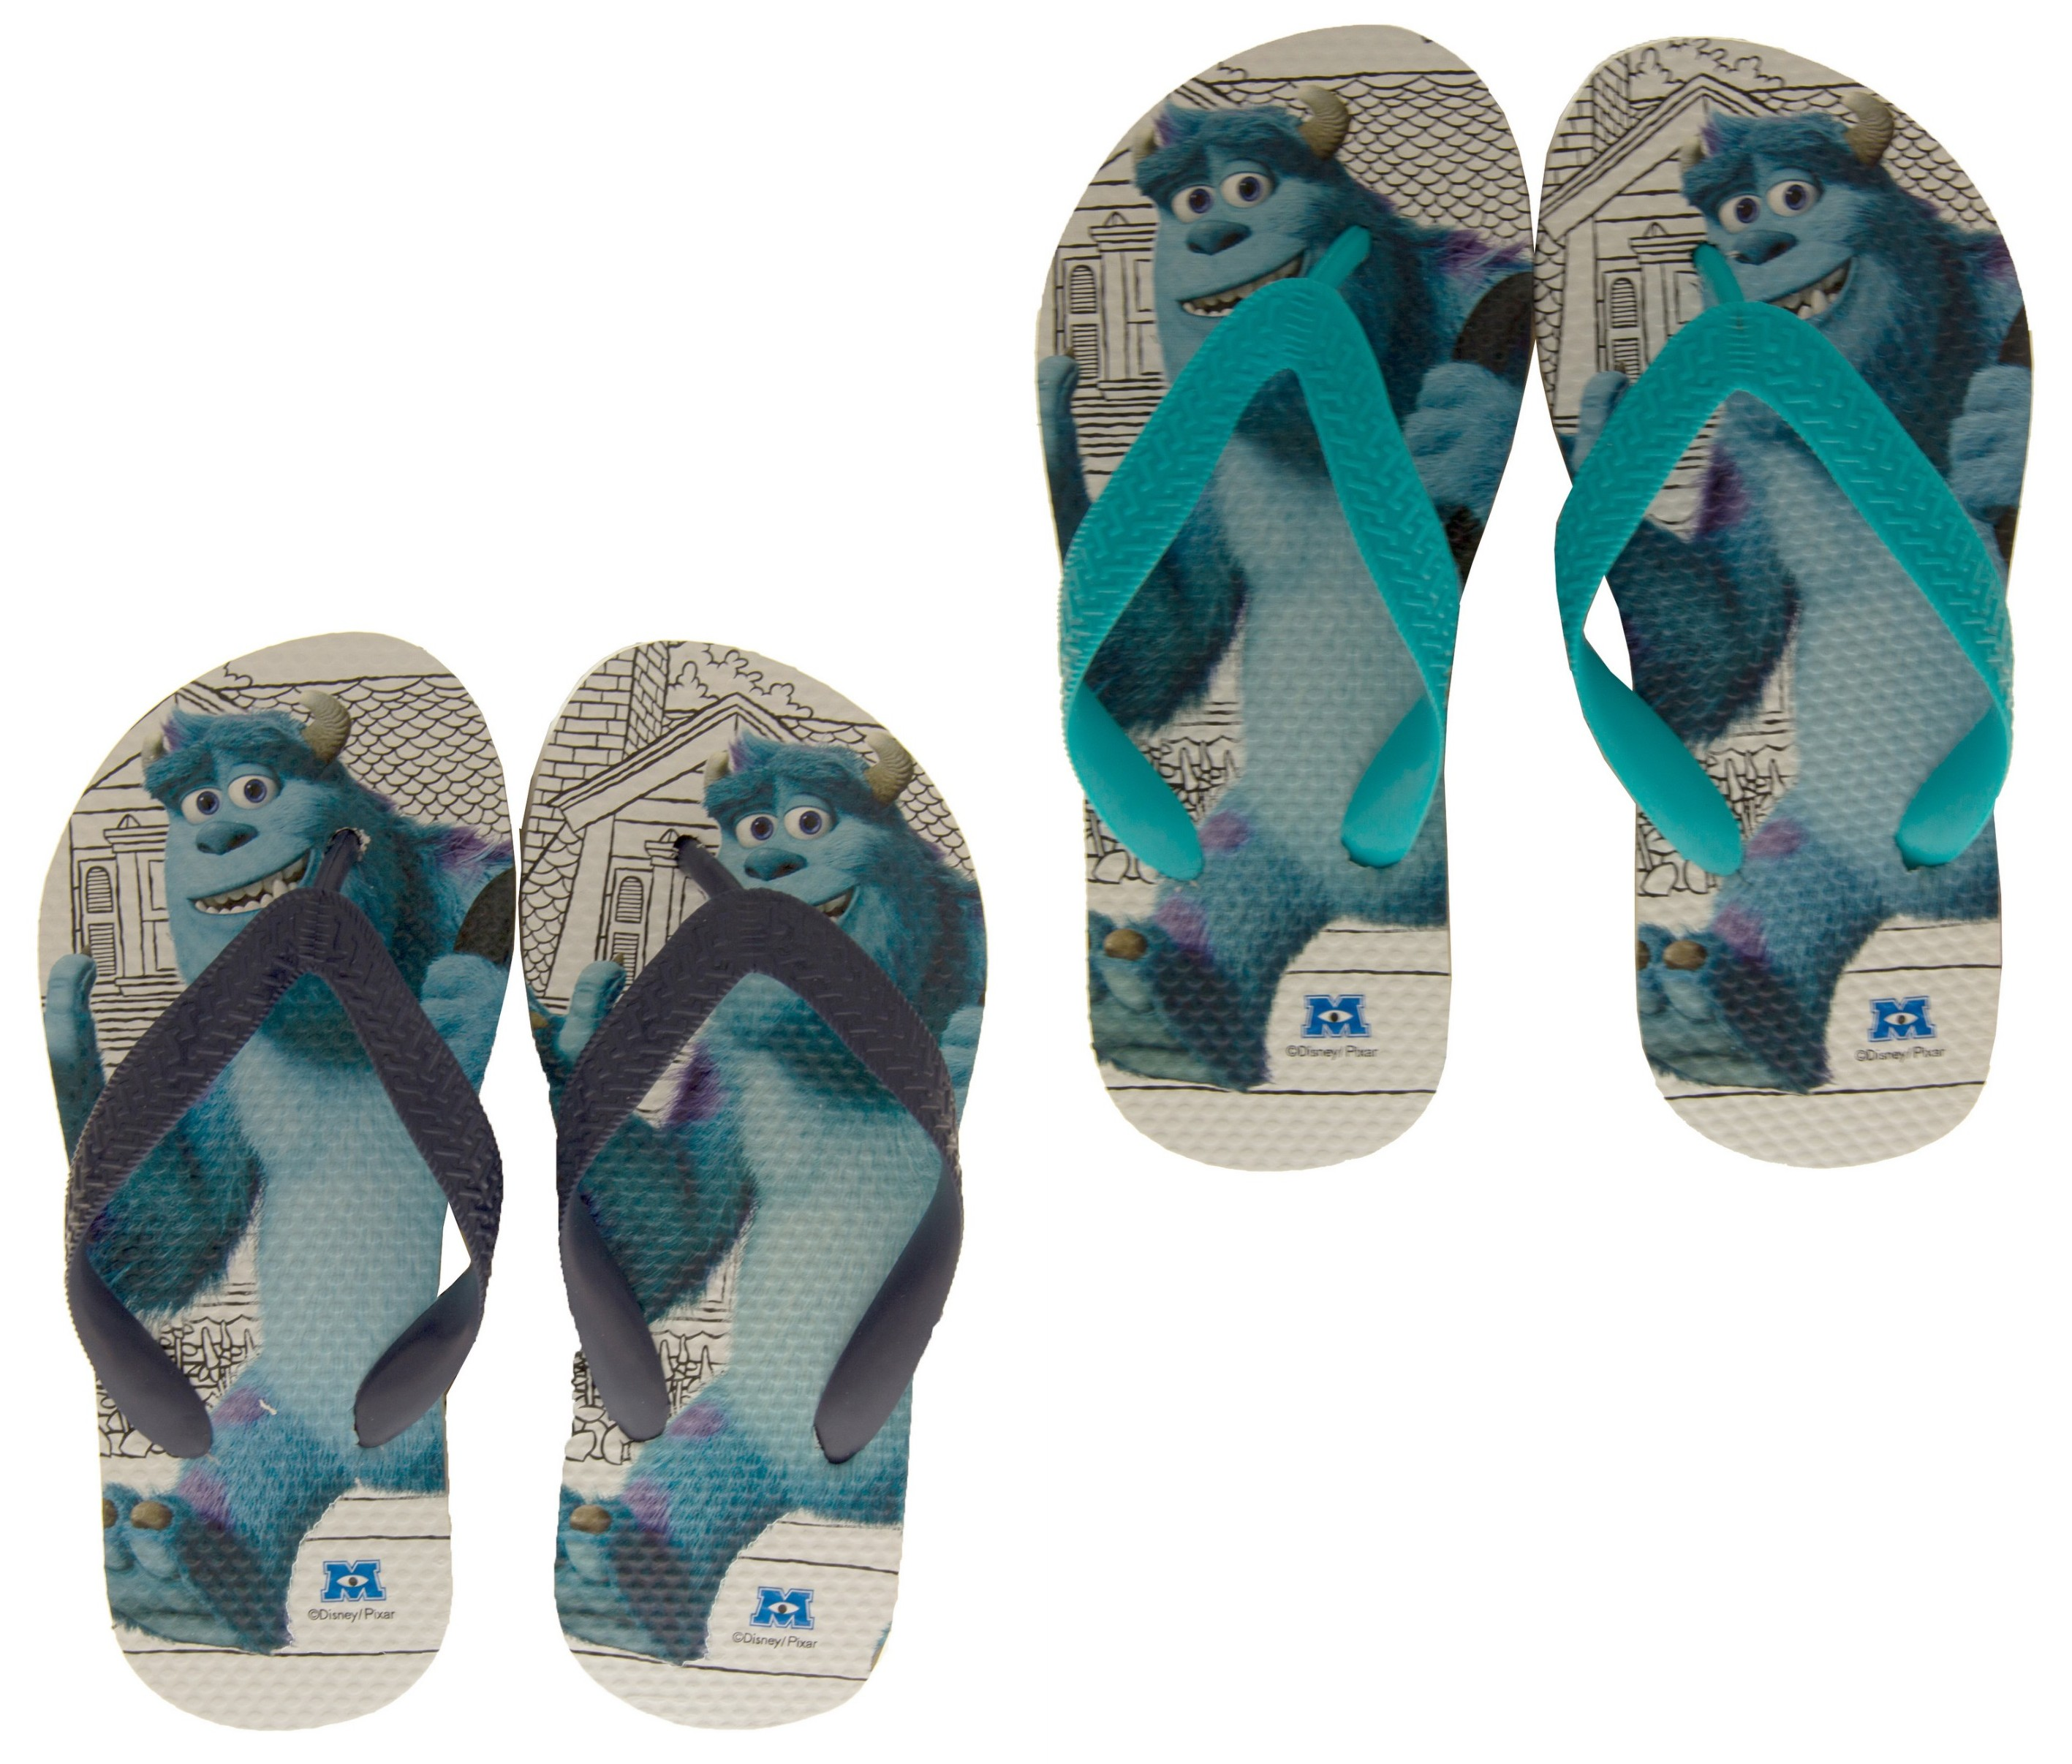 7139d3914cd77 Details about Boys Girls Monsters Inc Holiday Sandals Summer Flip Flops  Kids Sz Size 9-2